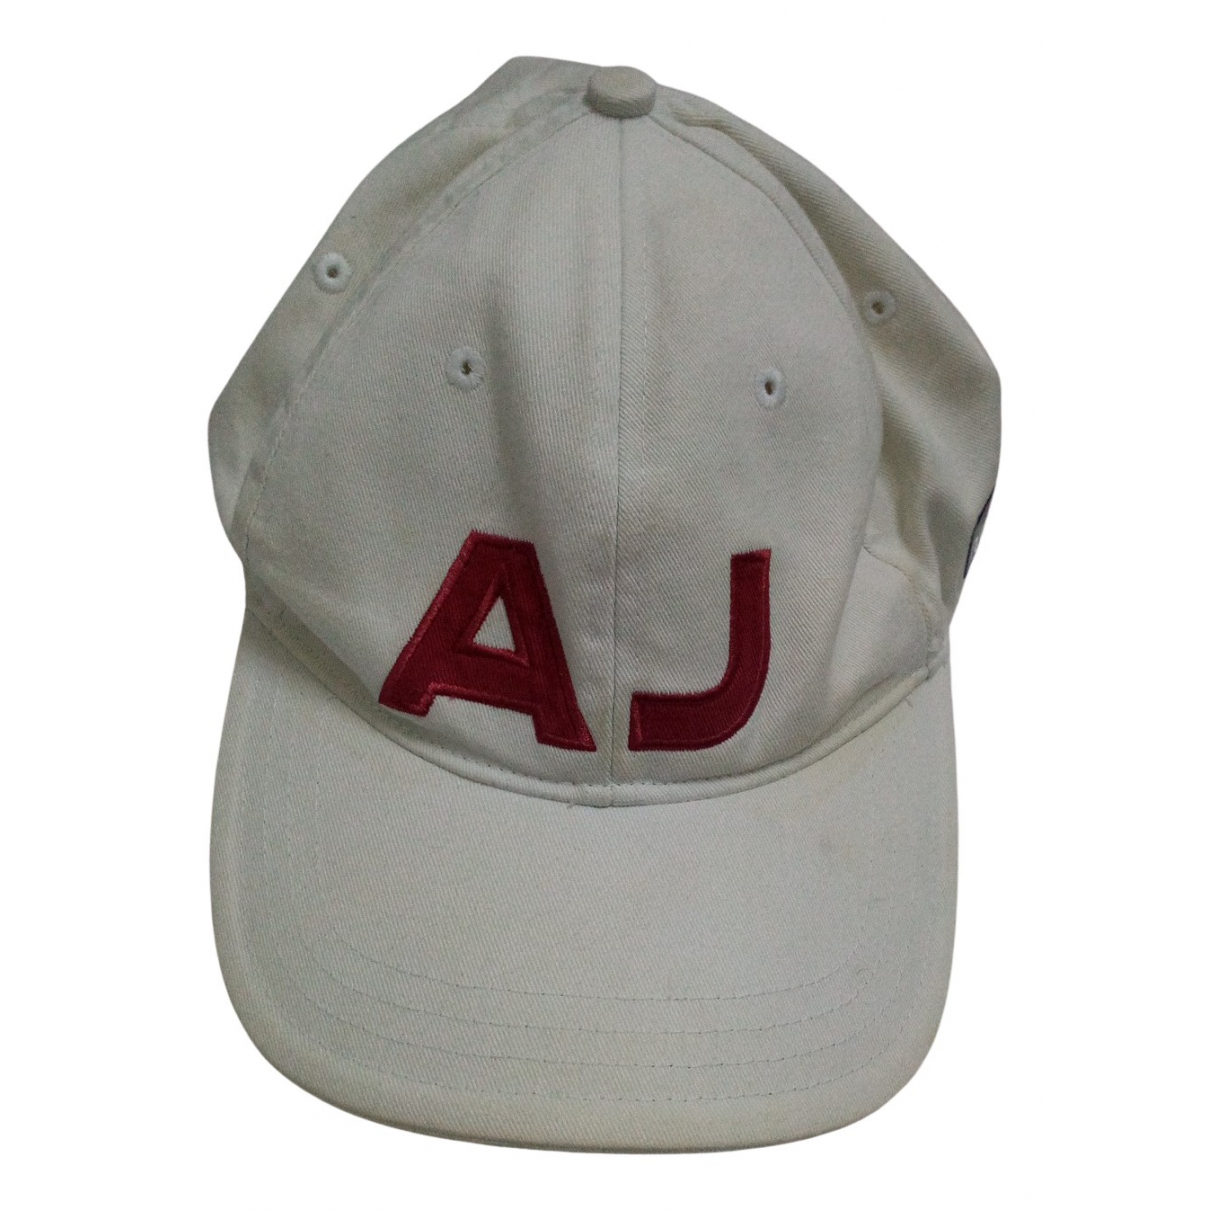 Armani Jeans N White Cotton hat & pull on hat for Men 57 cm